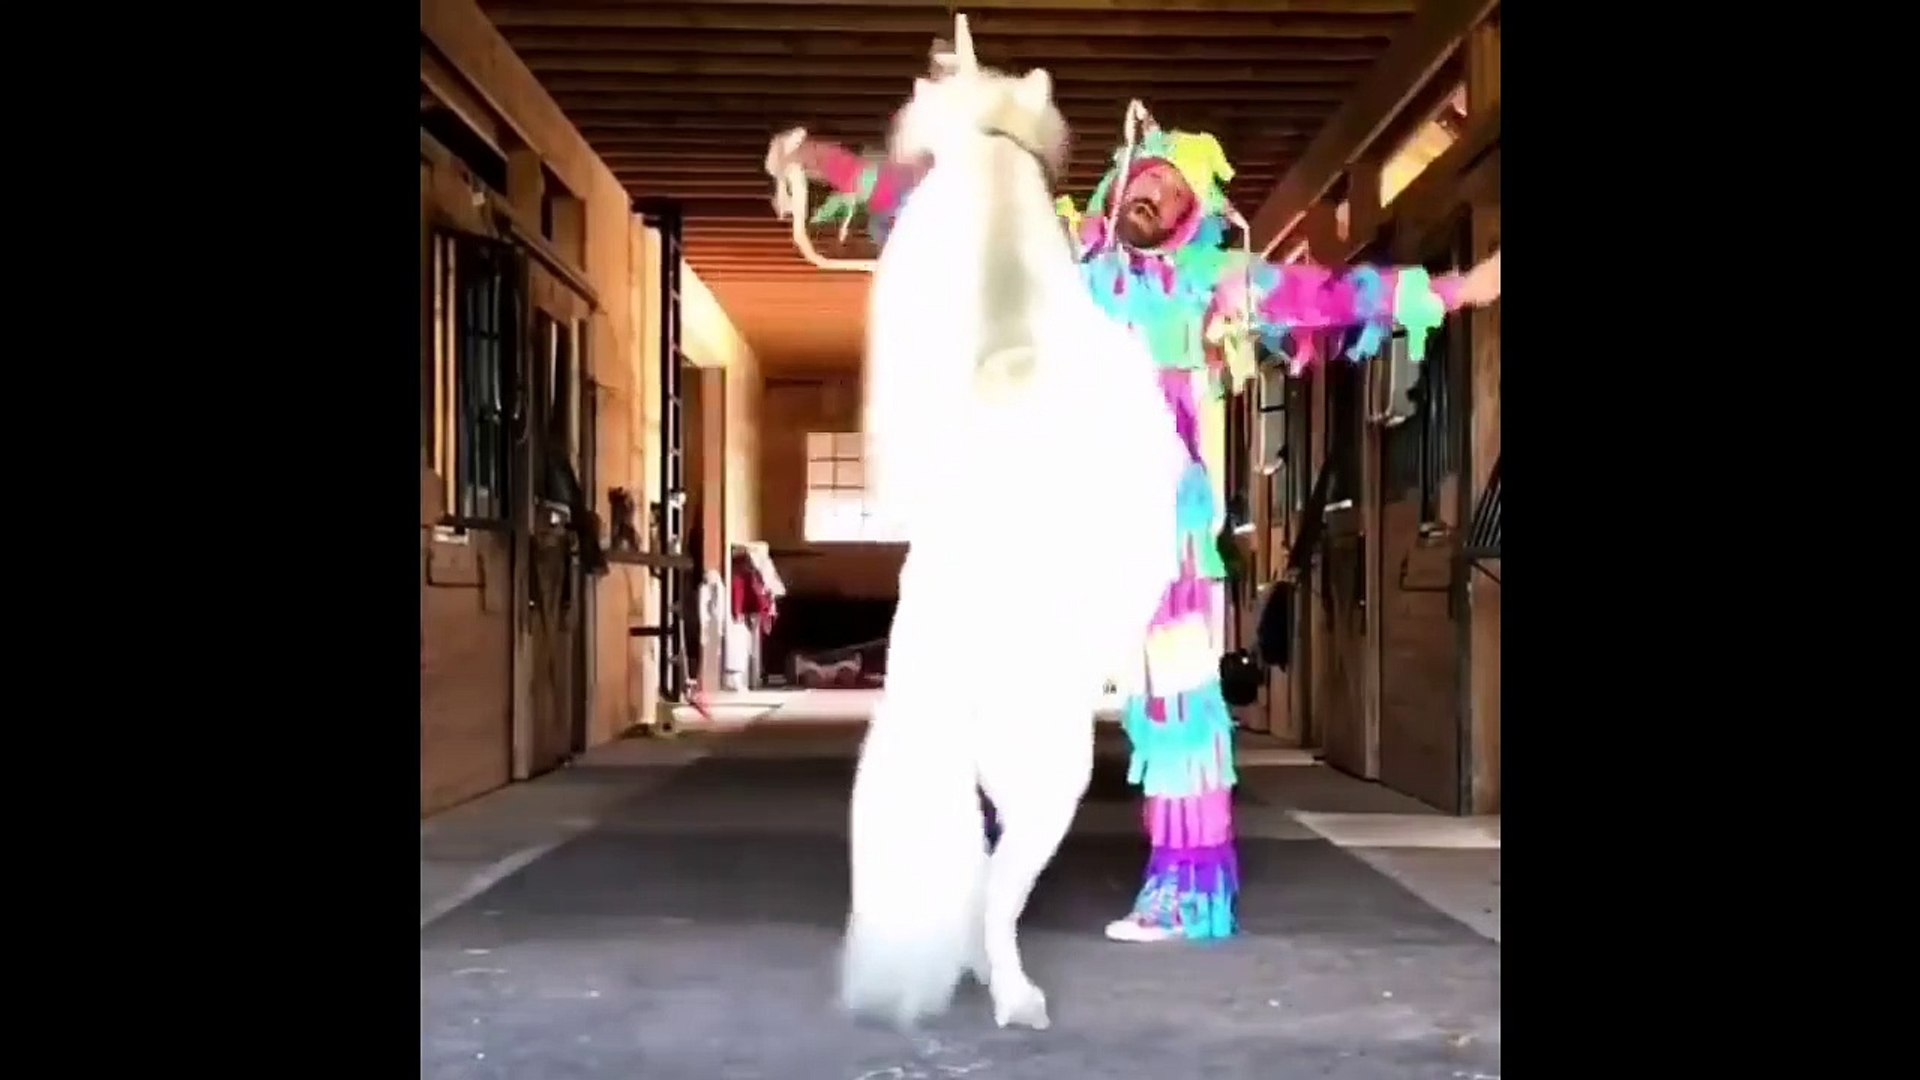 Funny And Cute Horse Videos Compilation Cute Moment Of The Horses Cutest Horse 5 Video Dailymotion